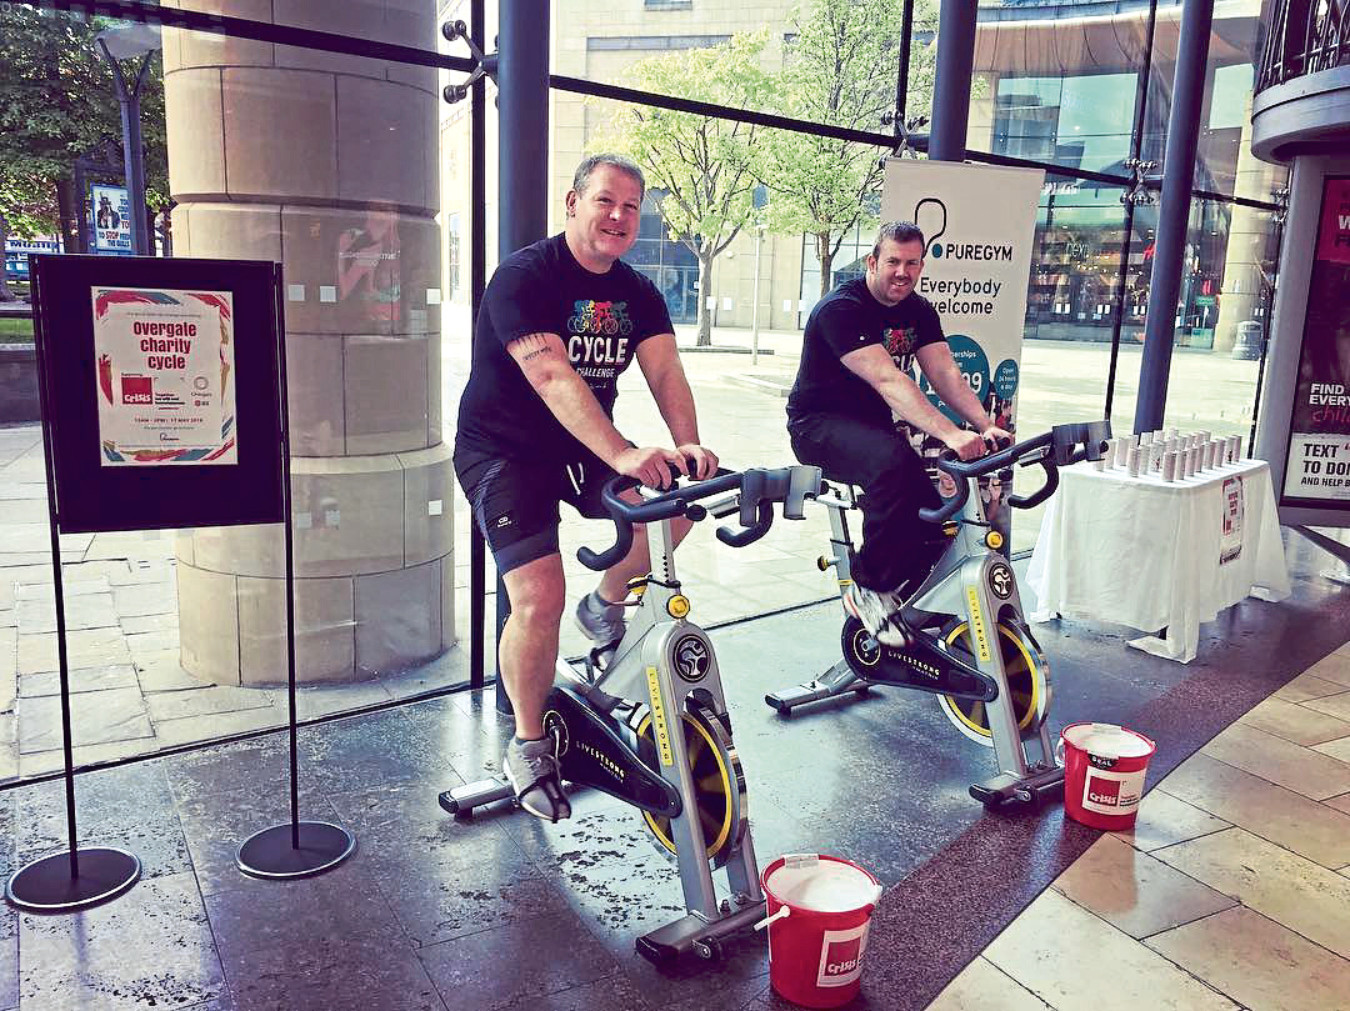 From: Mary McGowne [mailto:mary@thevineprcompany.co.uk]  Sent: 22 May 2018 08:52 To: Evening Telegraph Newsdesk Public Folder  Subject: Overgate & JLL Charity Cycle Fundraiser  Good morning,  Please find attached a picture of Malcolm Angus, Centre Manager of Overgate (left) and Ryan Short, Surveyor of JLL.  Along with the Overgate team, they took part in a charity cycle within the centre benefiting Crisis, the national charity for homeless people.  Over 300km were cycled in 4 hours and £135.60 was raised.  Many thanks,  Mary  Mary McGowne Managing Director THE VINE PR & EVENTS T  00 44 (0)141 810 5110  M 07786 23 1066 www.thevineprcompany.co.uk